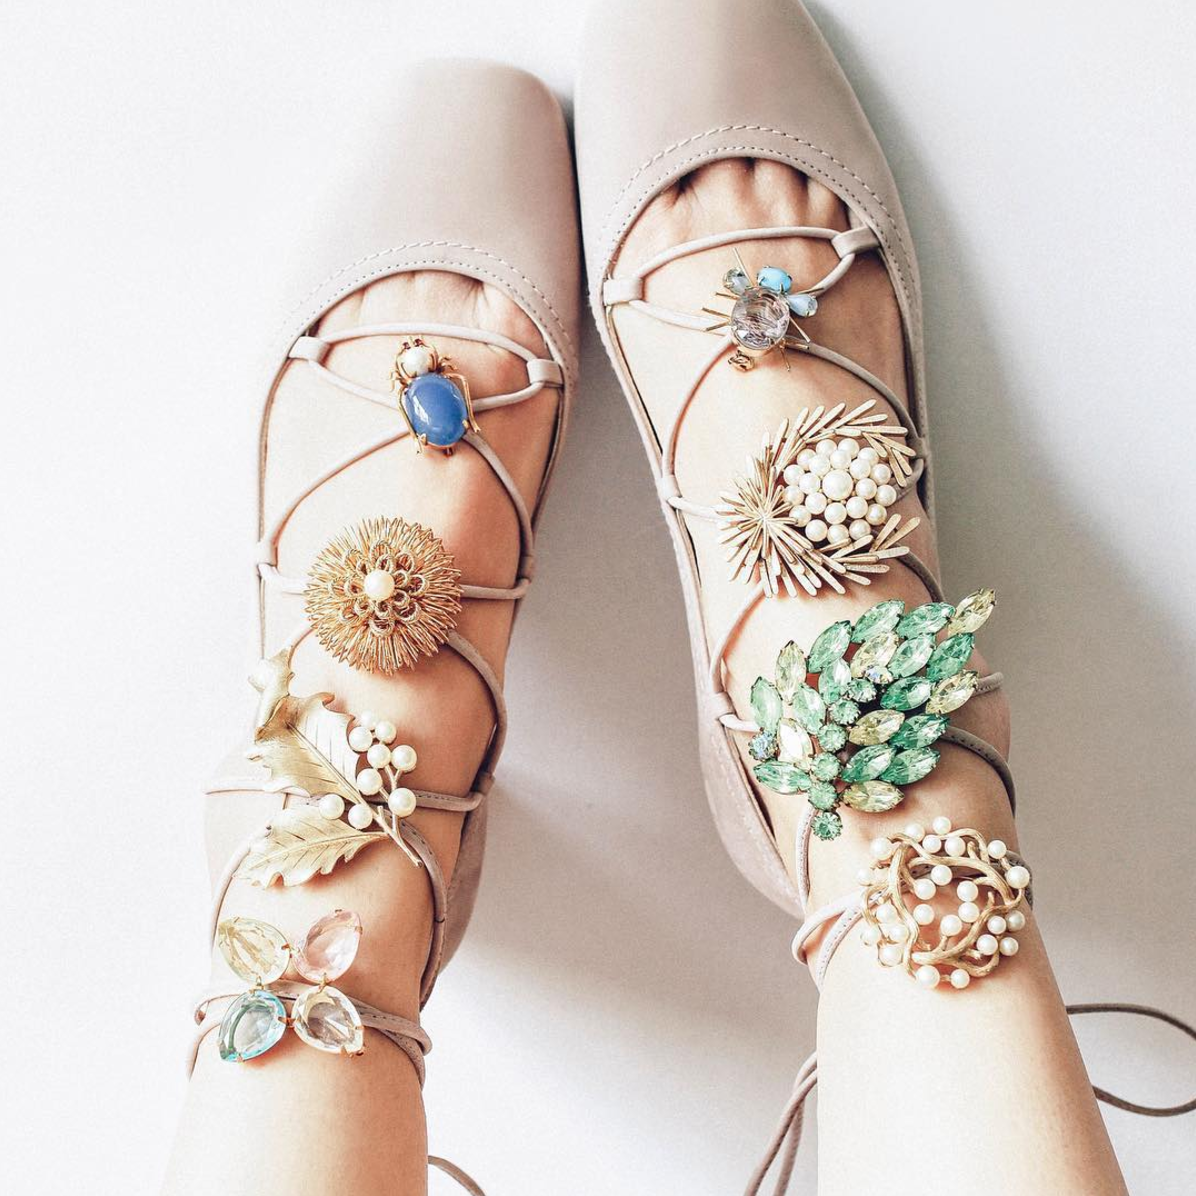 Put a Pin On It: A Brooch That Is (vintage pins on lace-up shoes) | Click through for the details. | glitterinc.com | @glitterinc